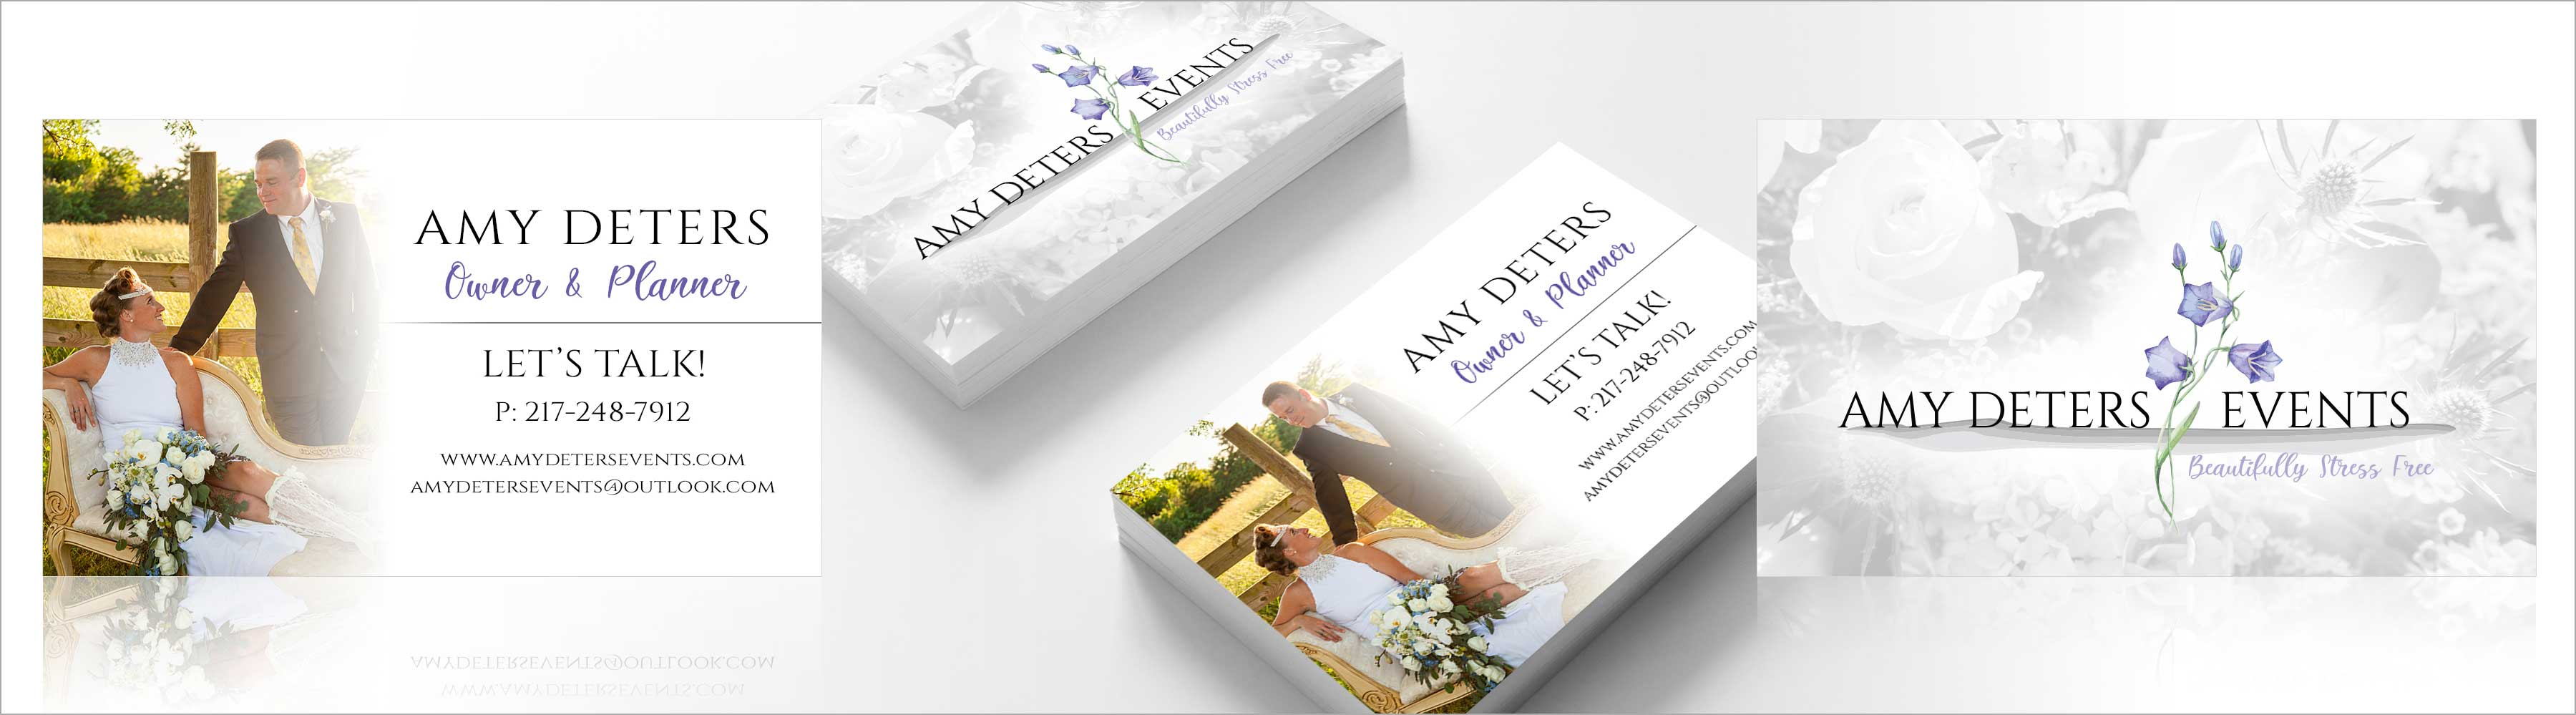 Amy Deters Events Business Card Design